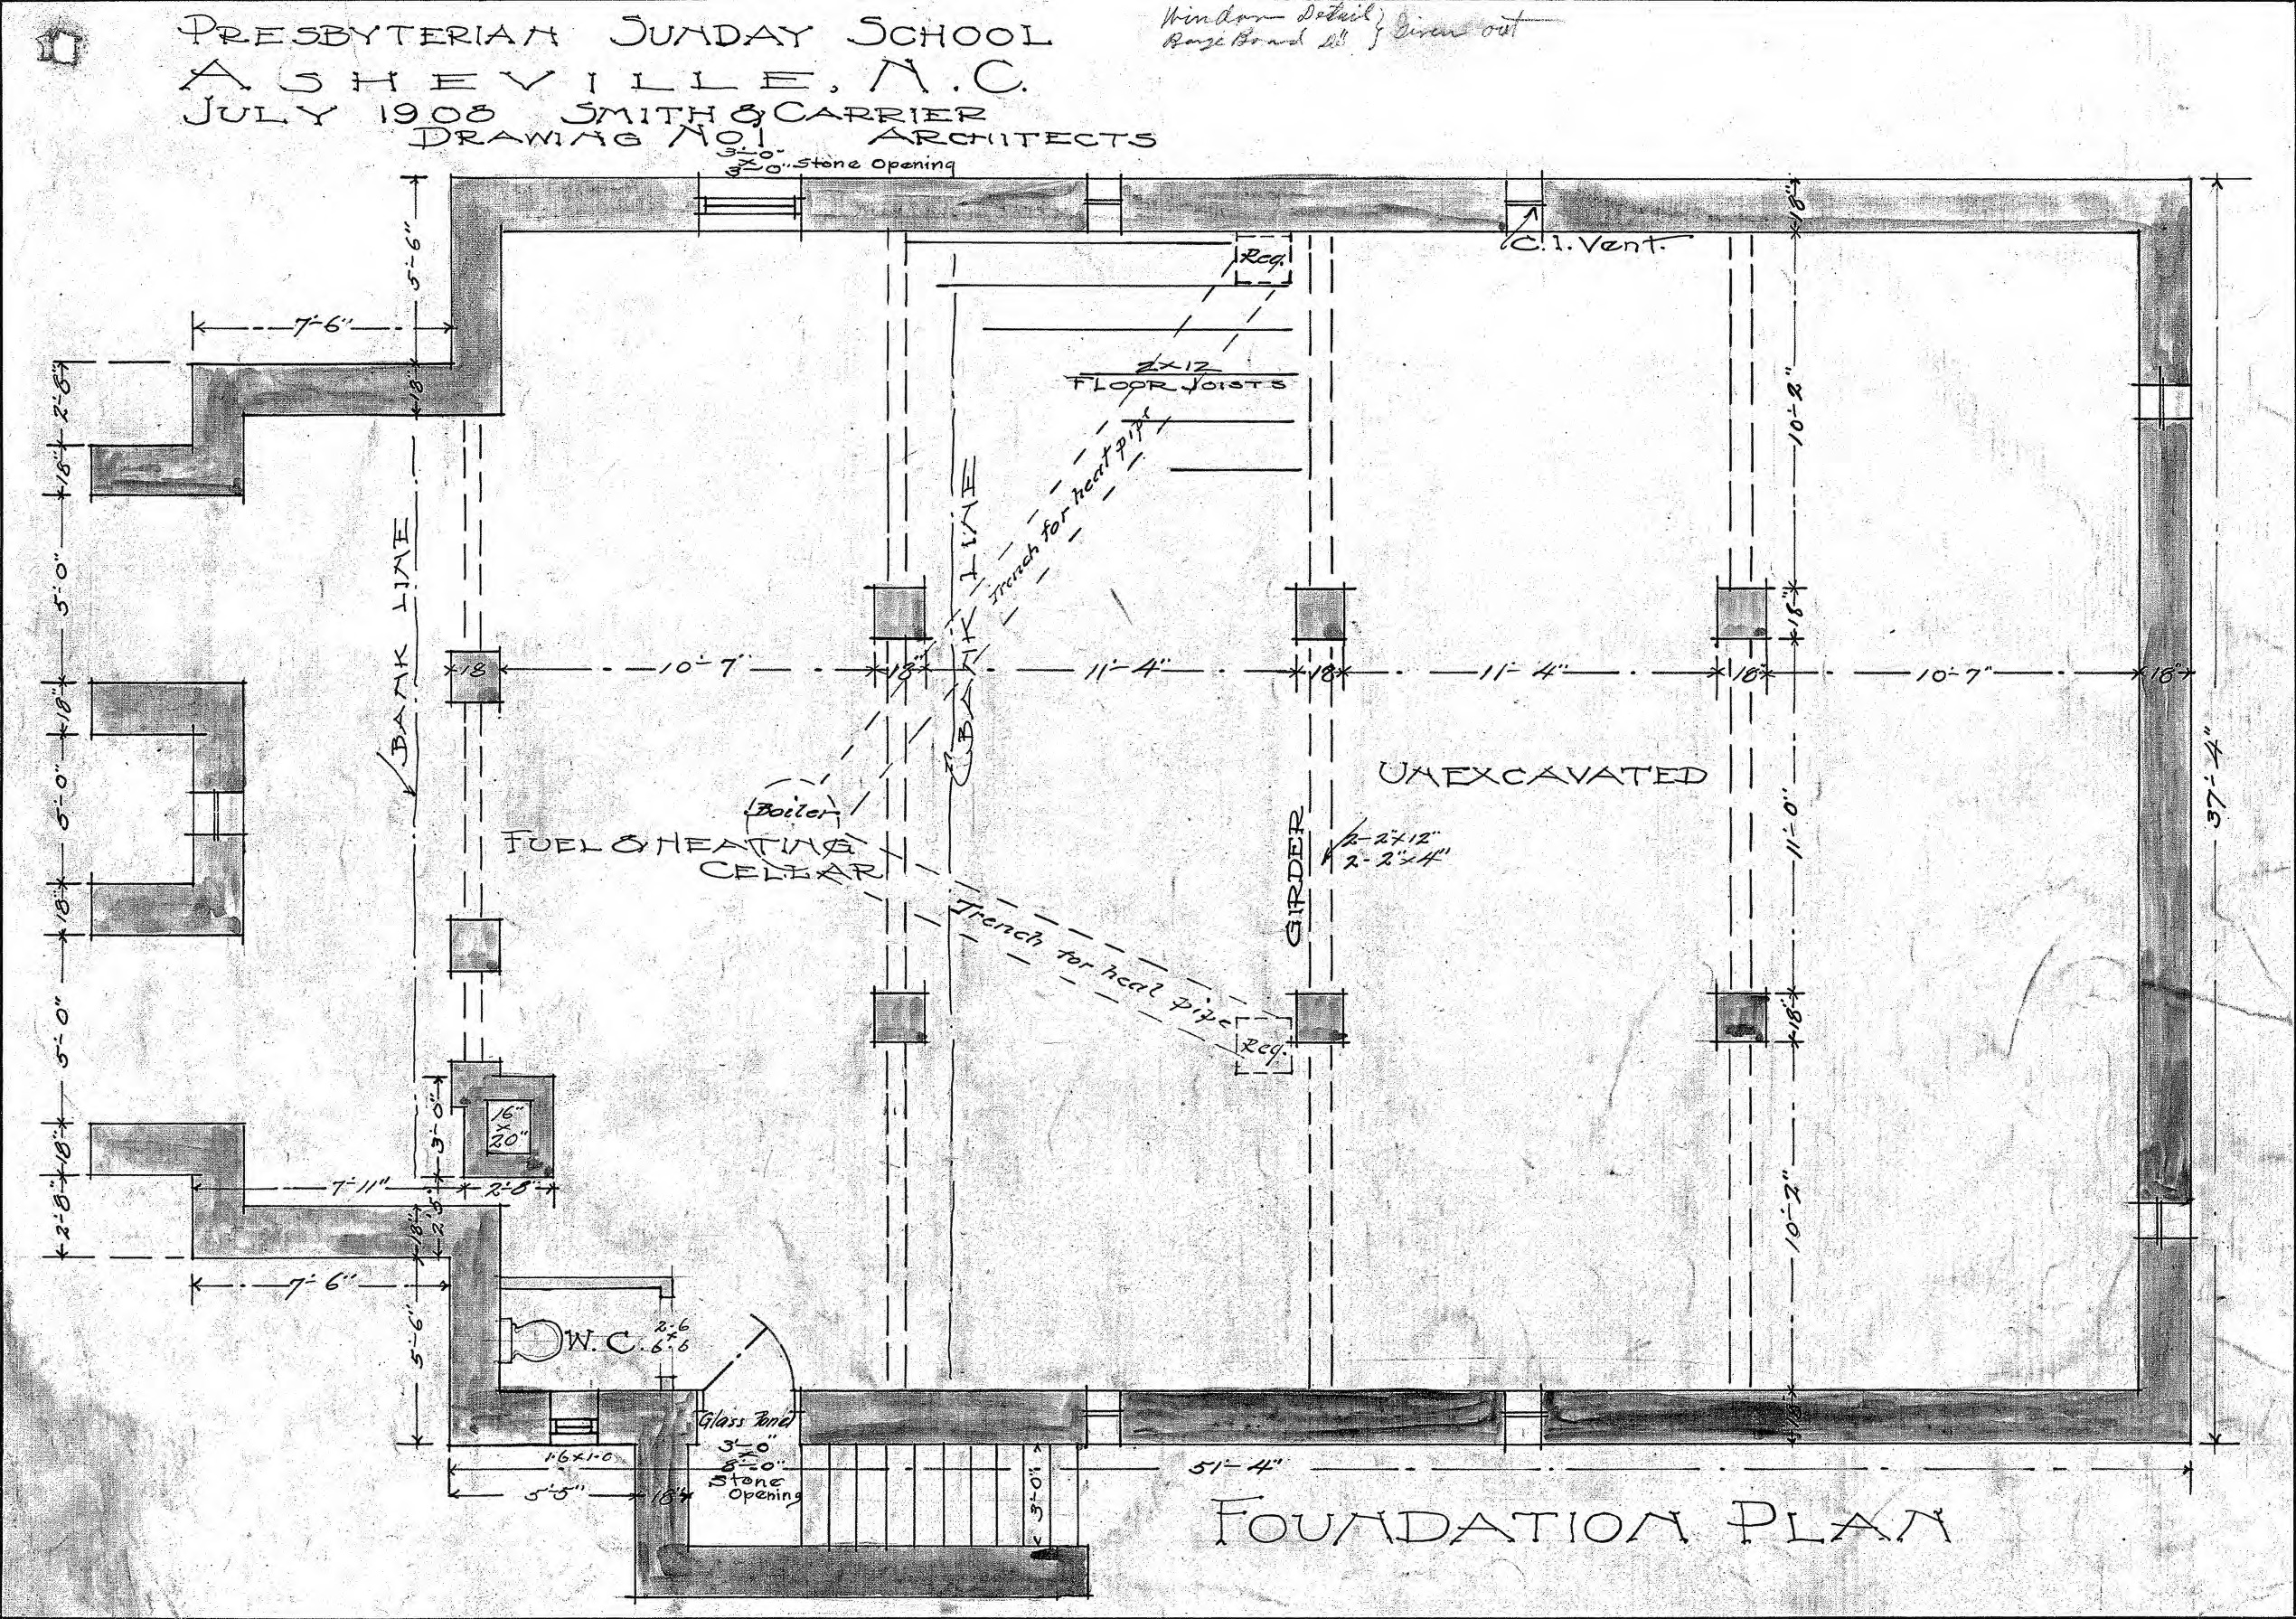 Foundation plan drawing for Foundation plan